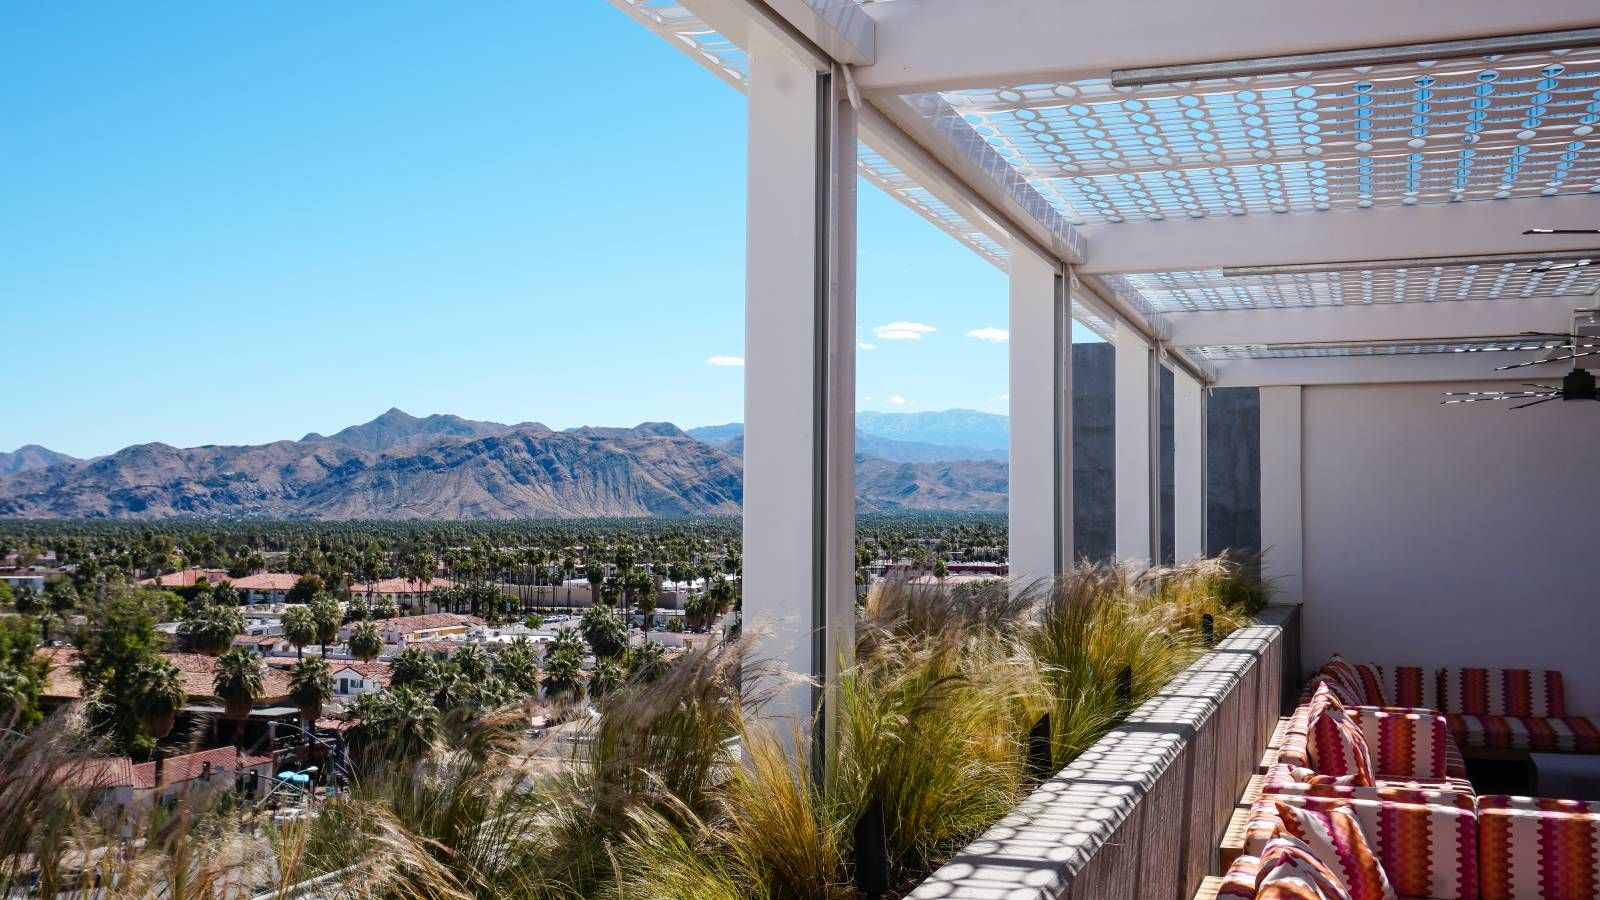 Luxury Palm Springs Hotels - Rowan